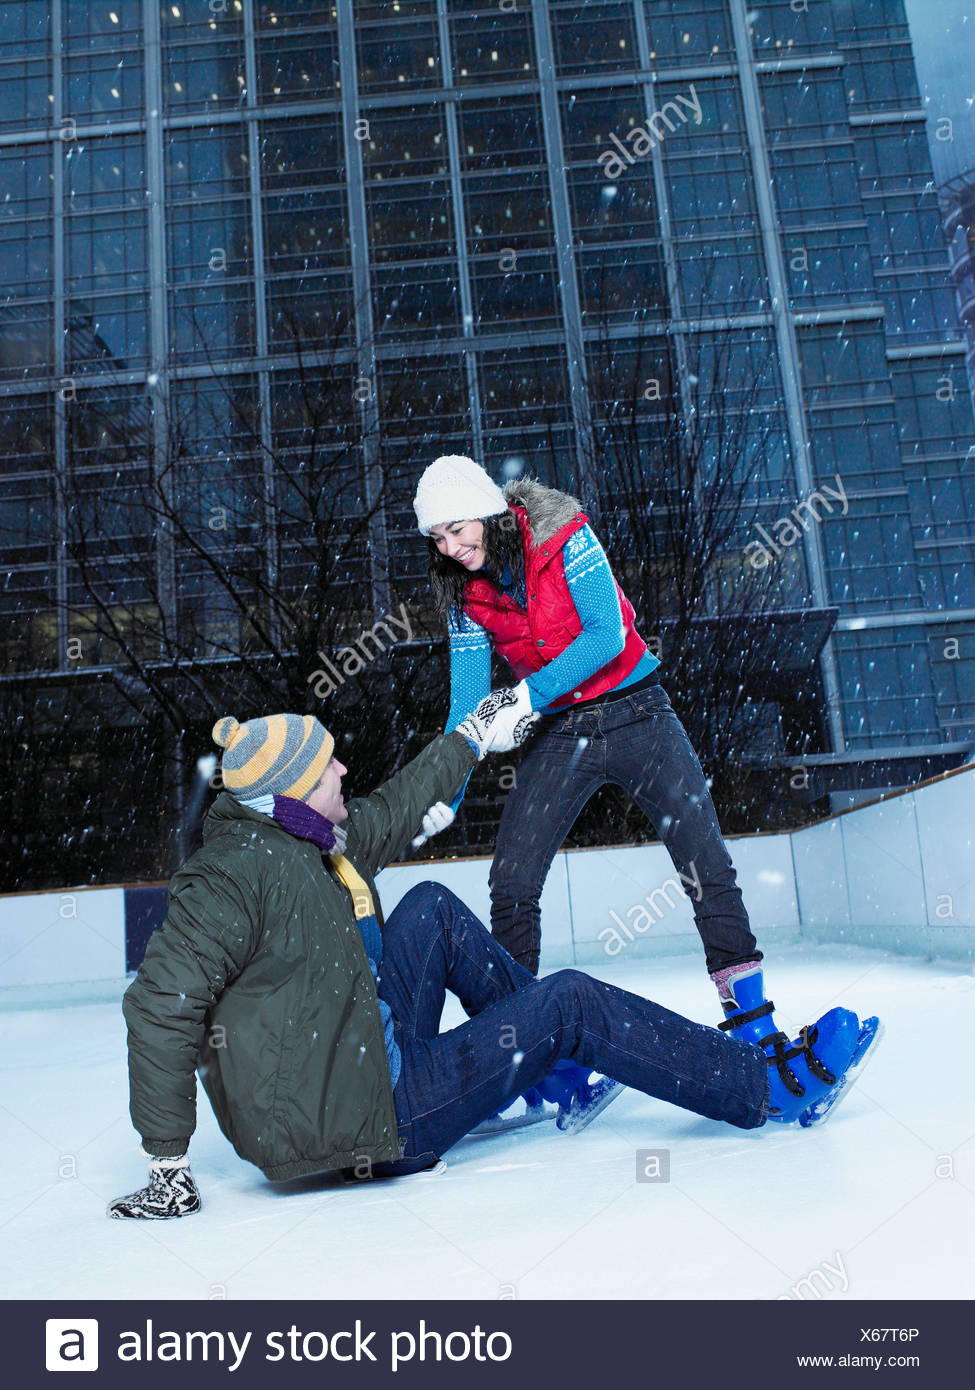 Woman helping man up from ice rink - Stock Image